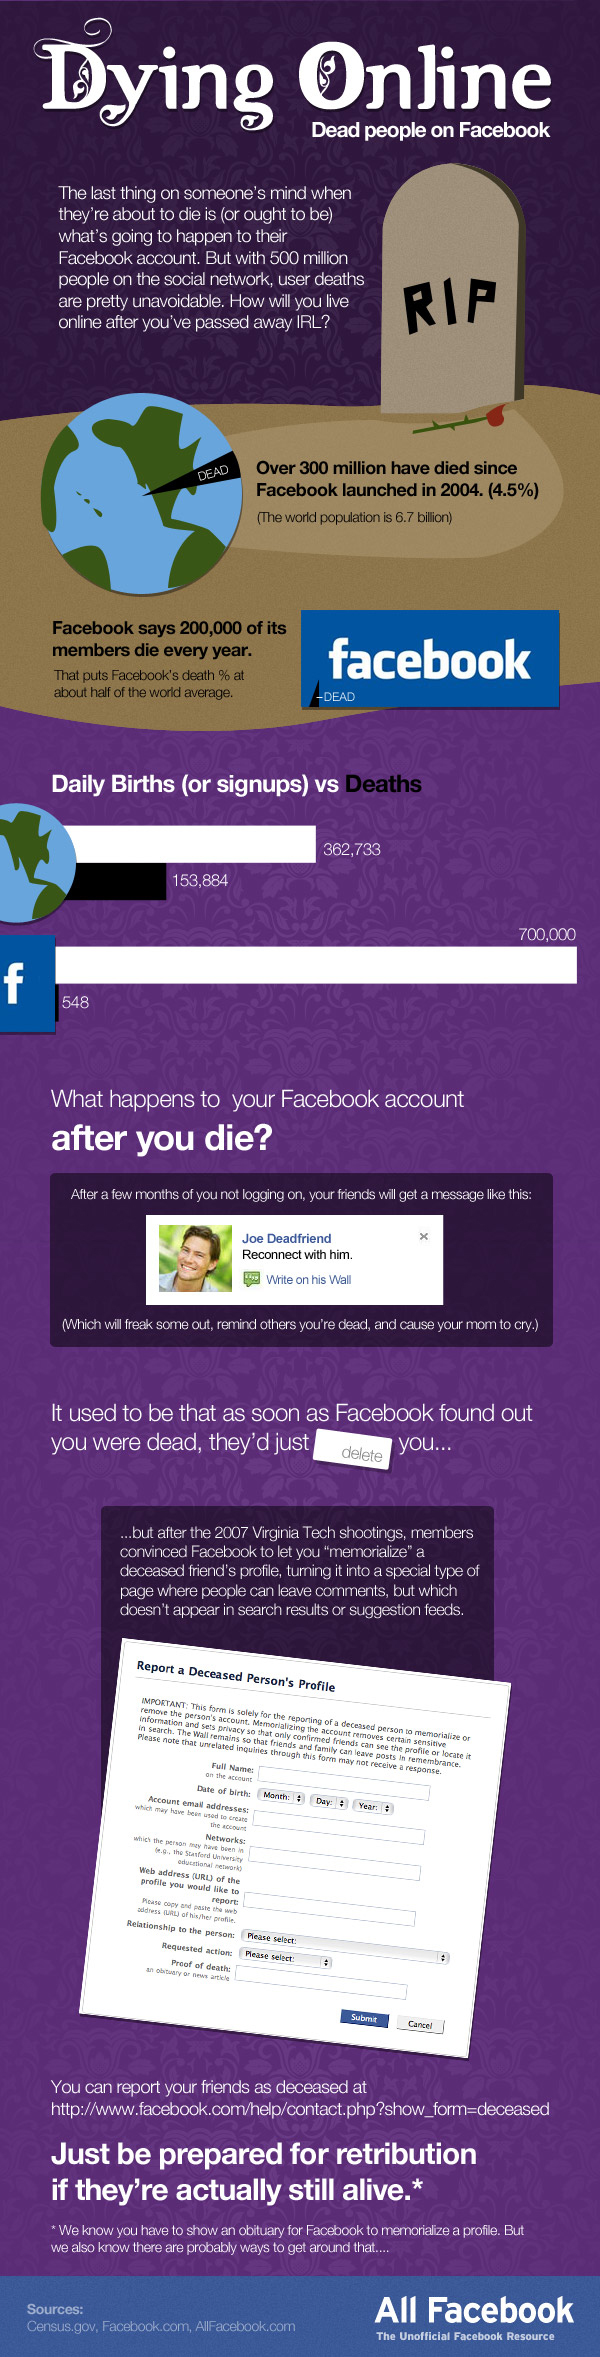 AllFacebook-death-on-facebook